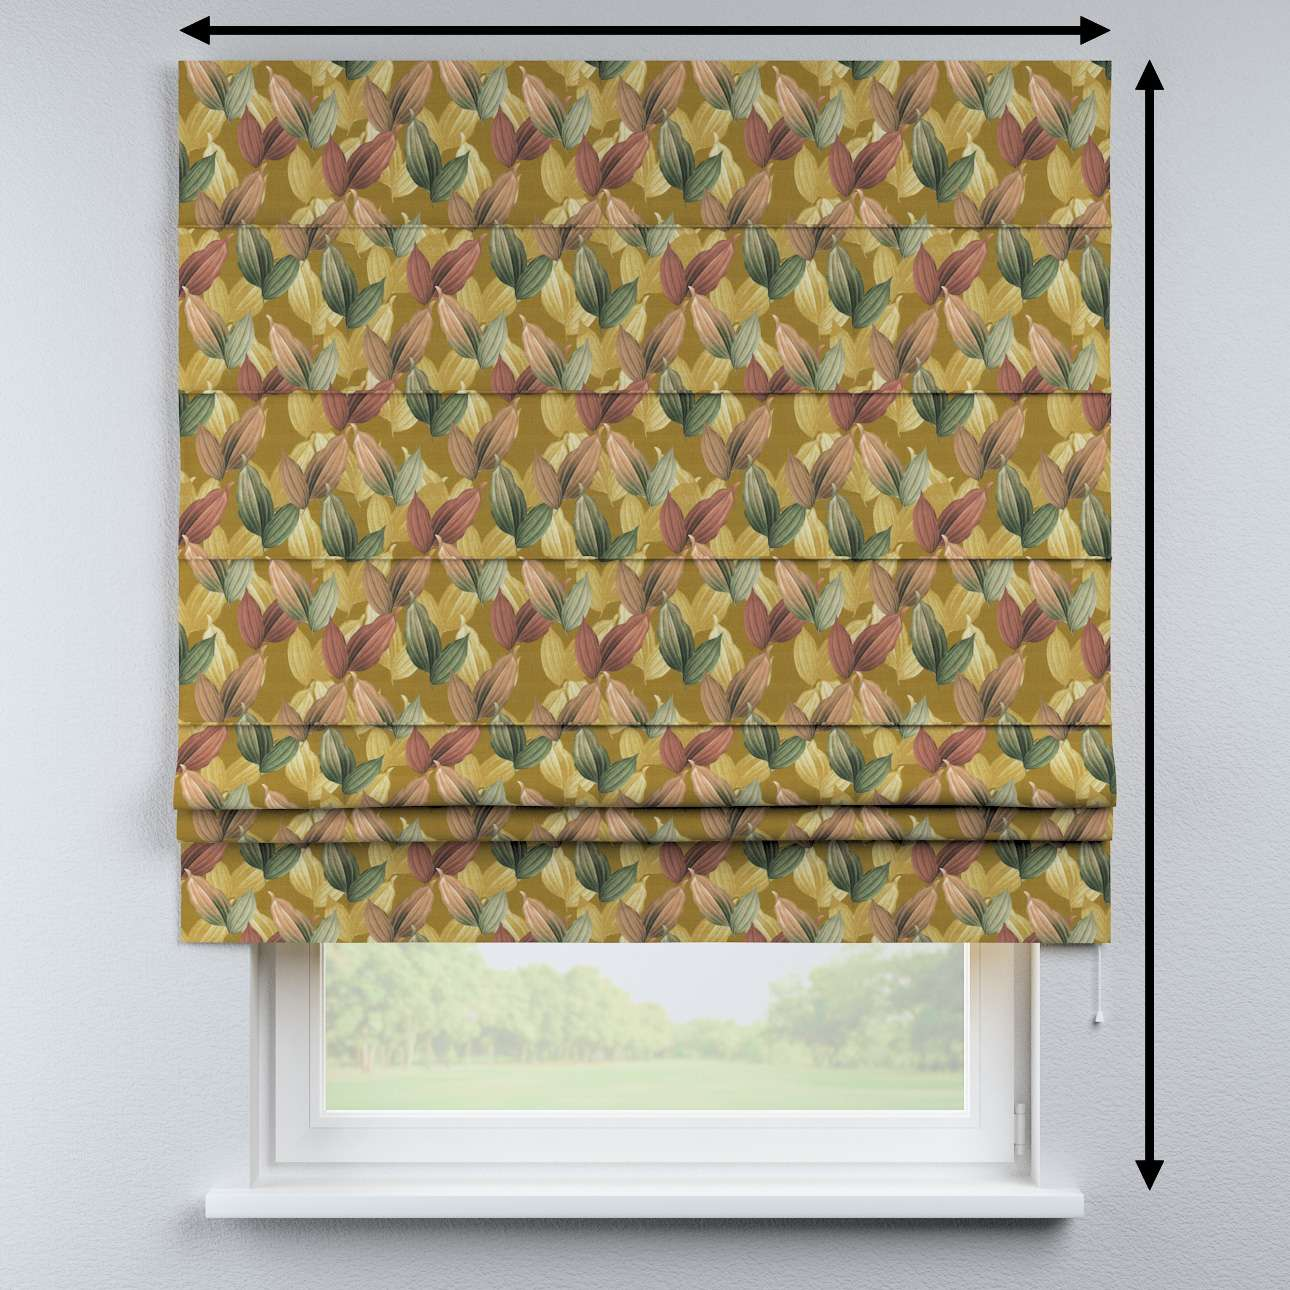 Padva roman blind in collection Abigail, fabric: 143-22